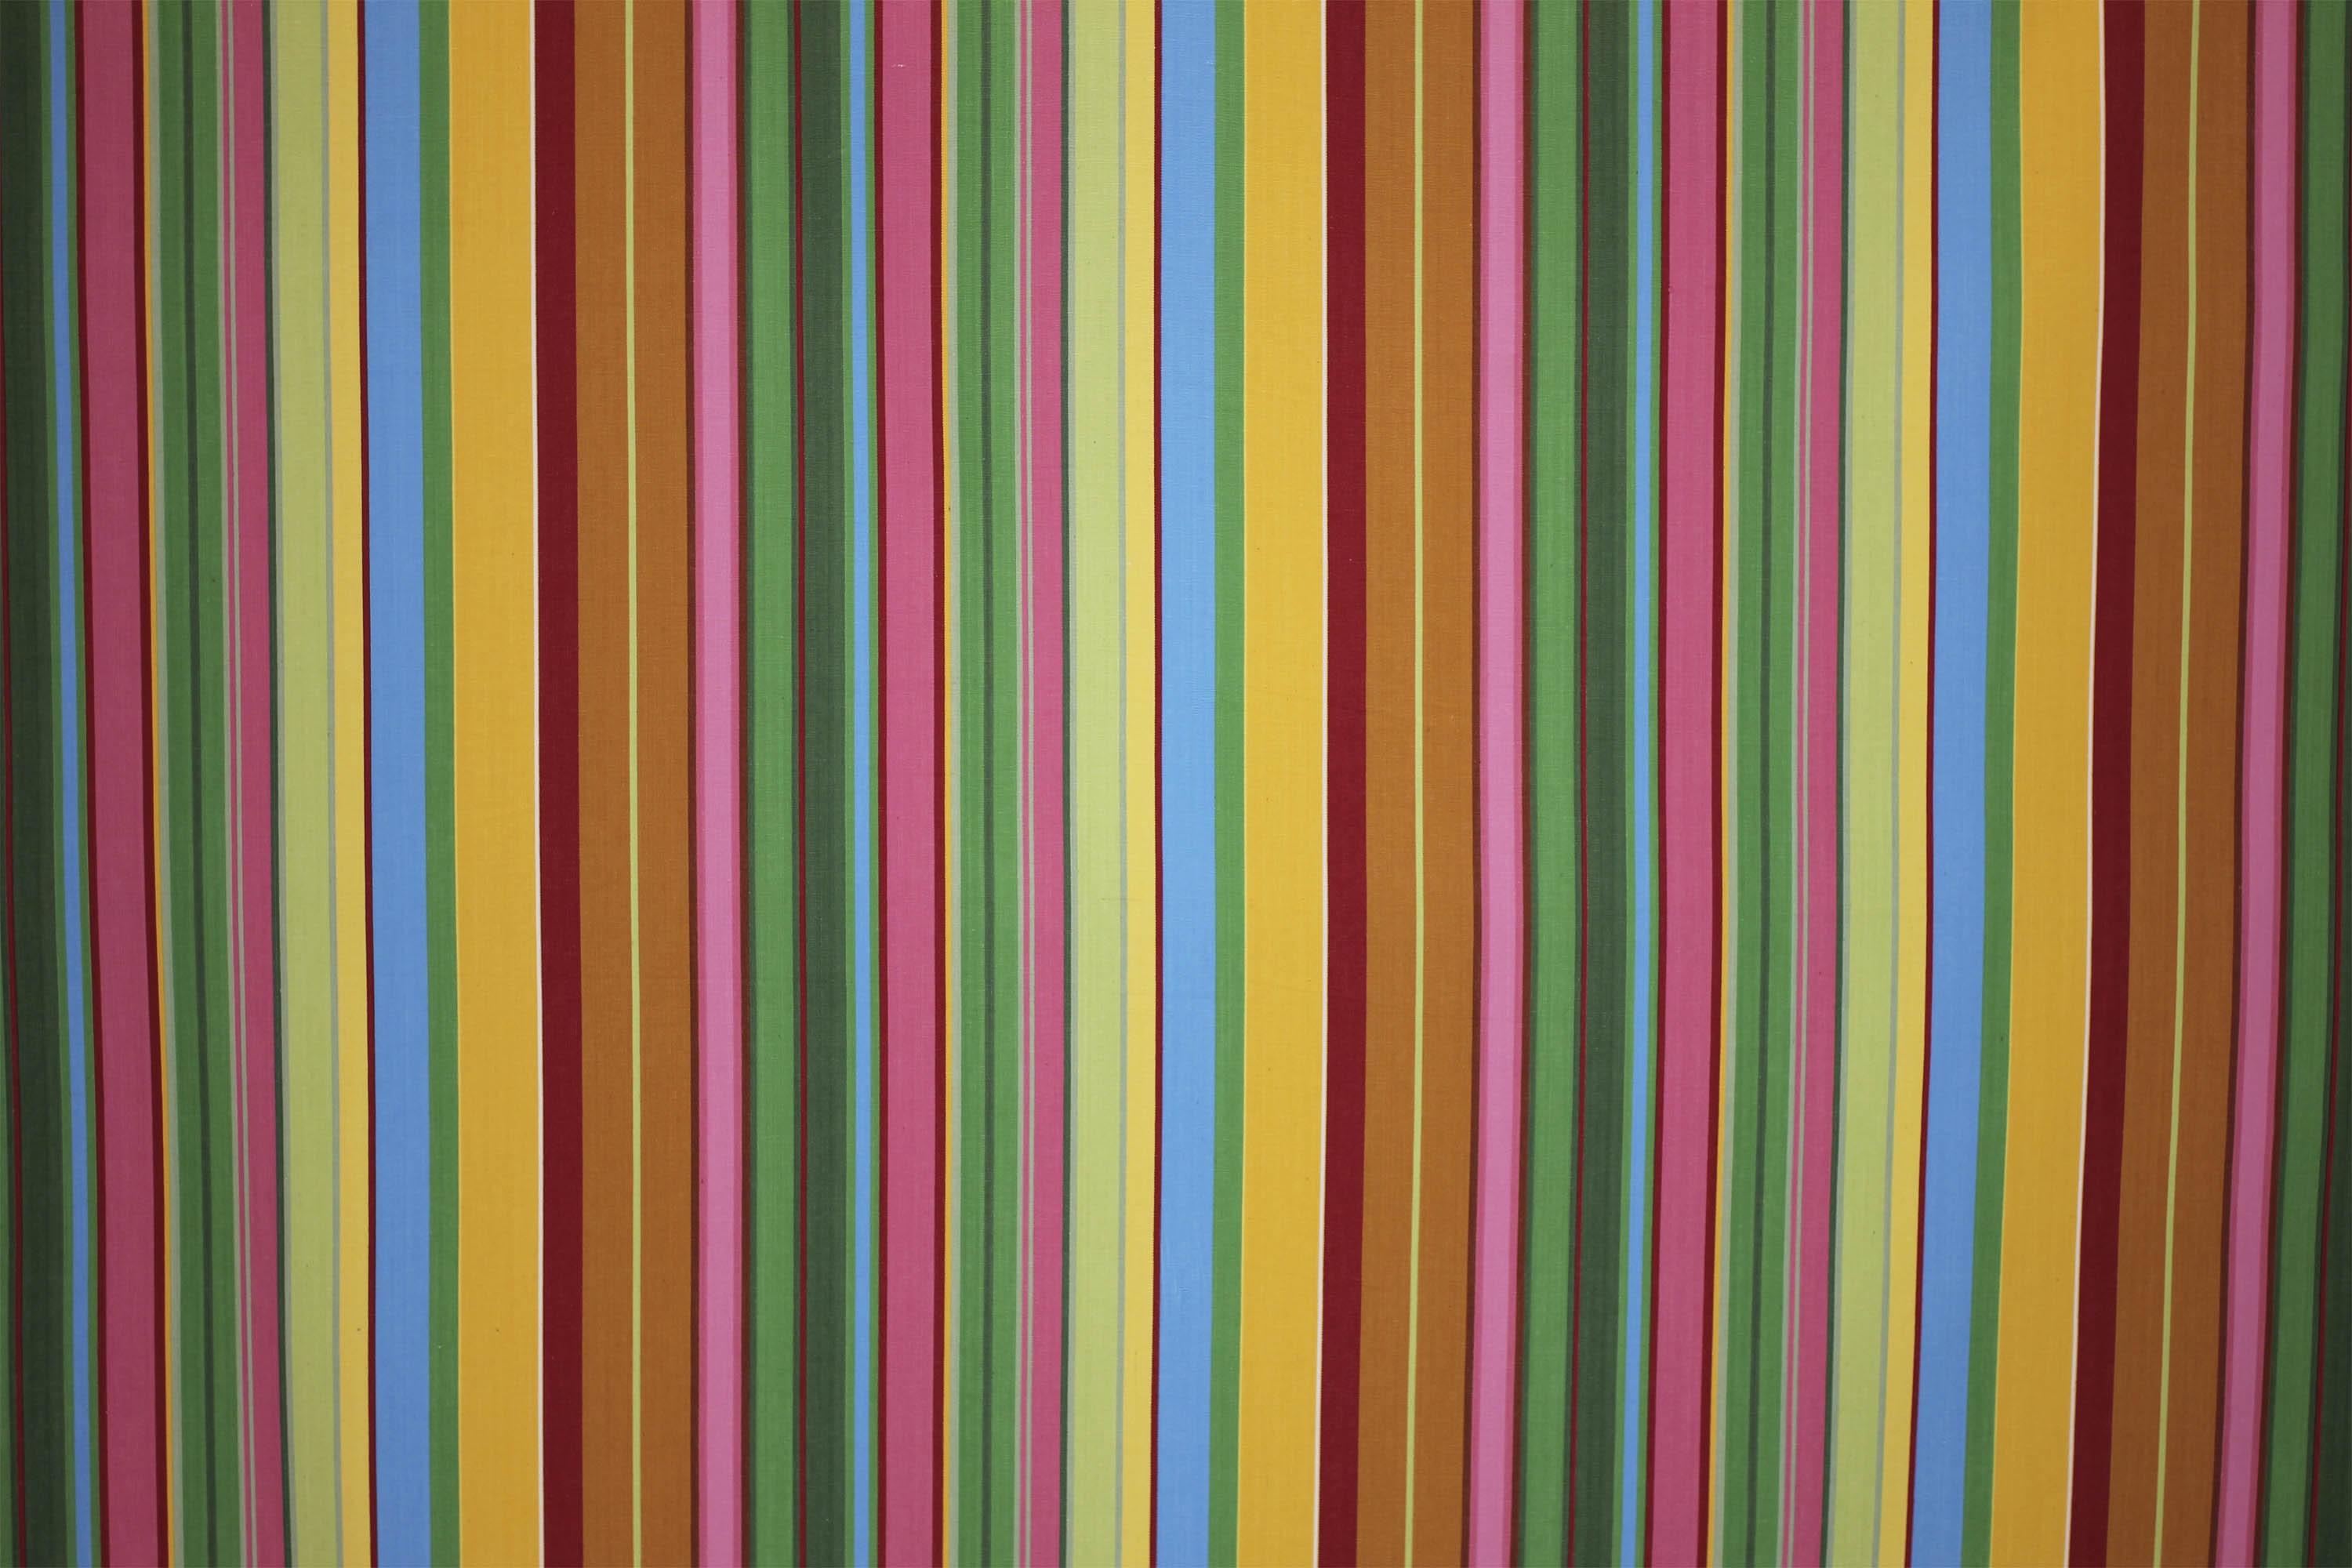 Pink Striped Fabrics | Stripe Cotton Fabrics | Striped Curtain Fabrics | Upholstery Fabrics  Snooker Stripes